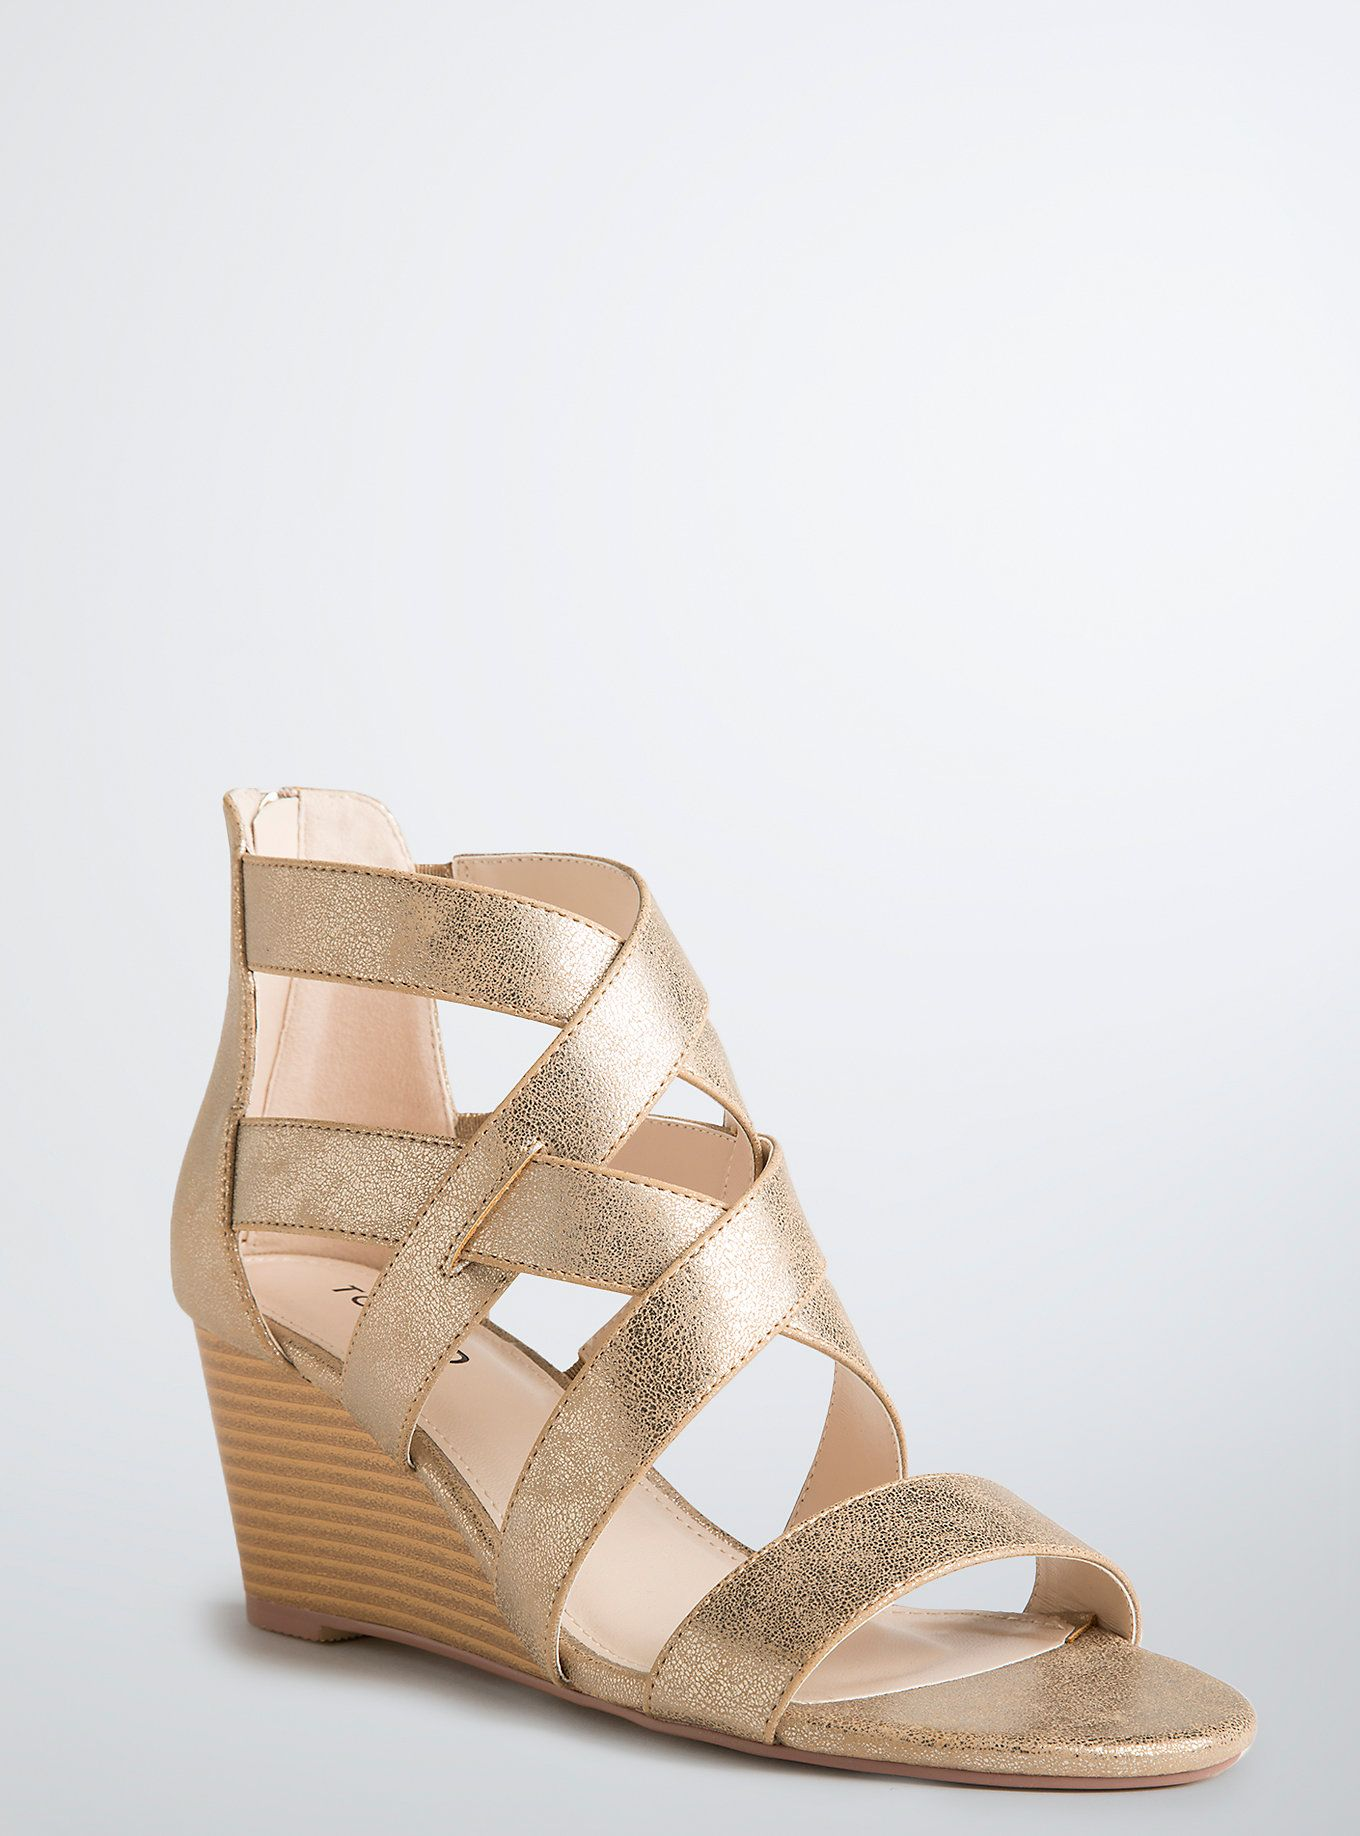 Wide Width & Plus Size Shoes for Women | Torrid | Girly ...